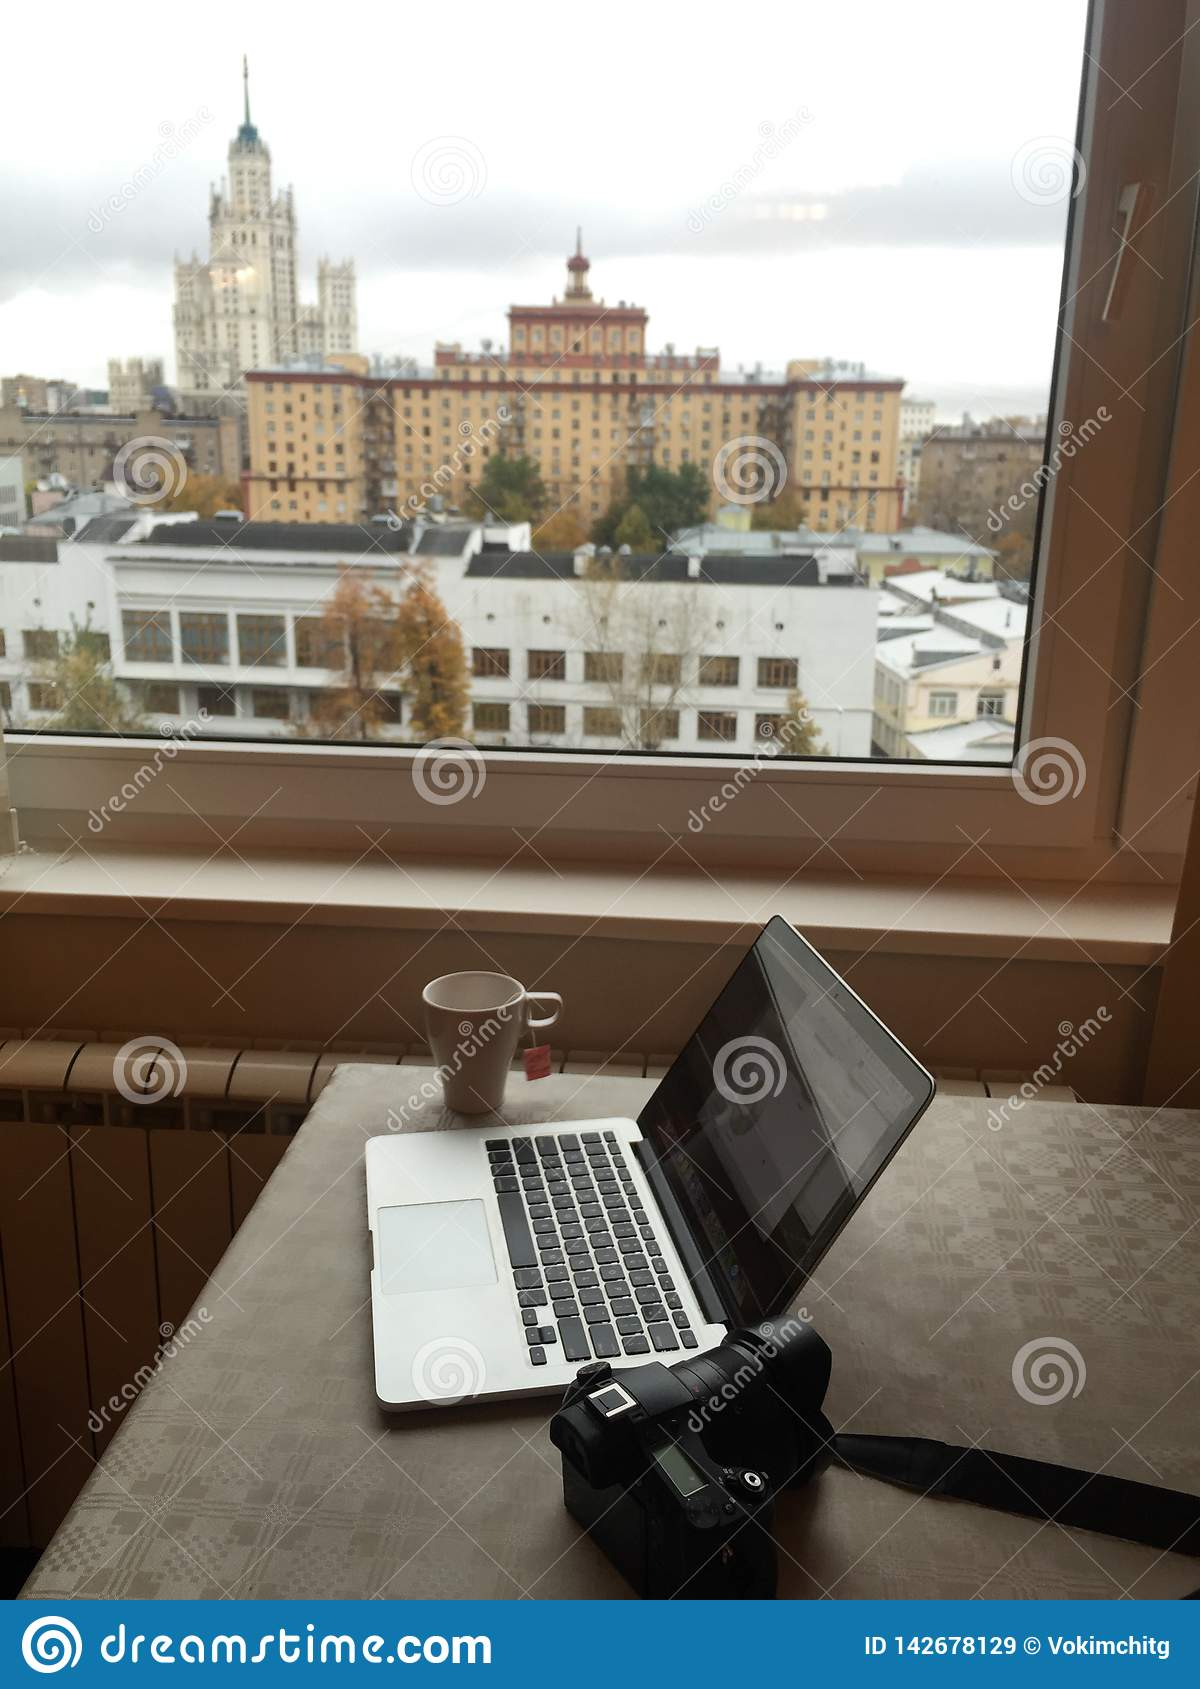 En Macbook med den digitala kameran